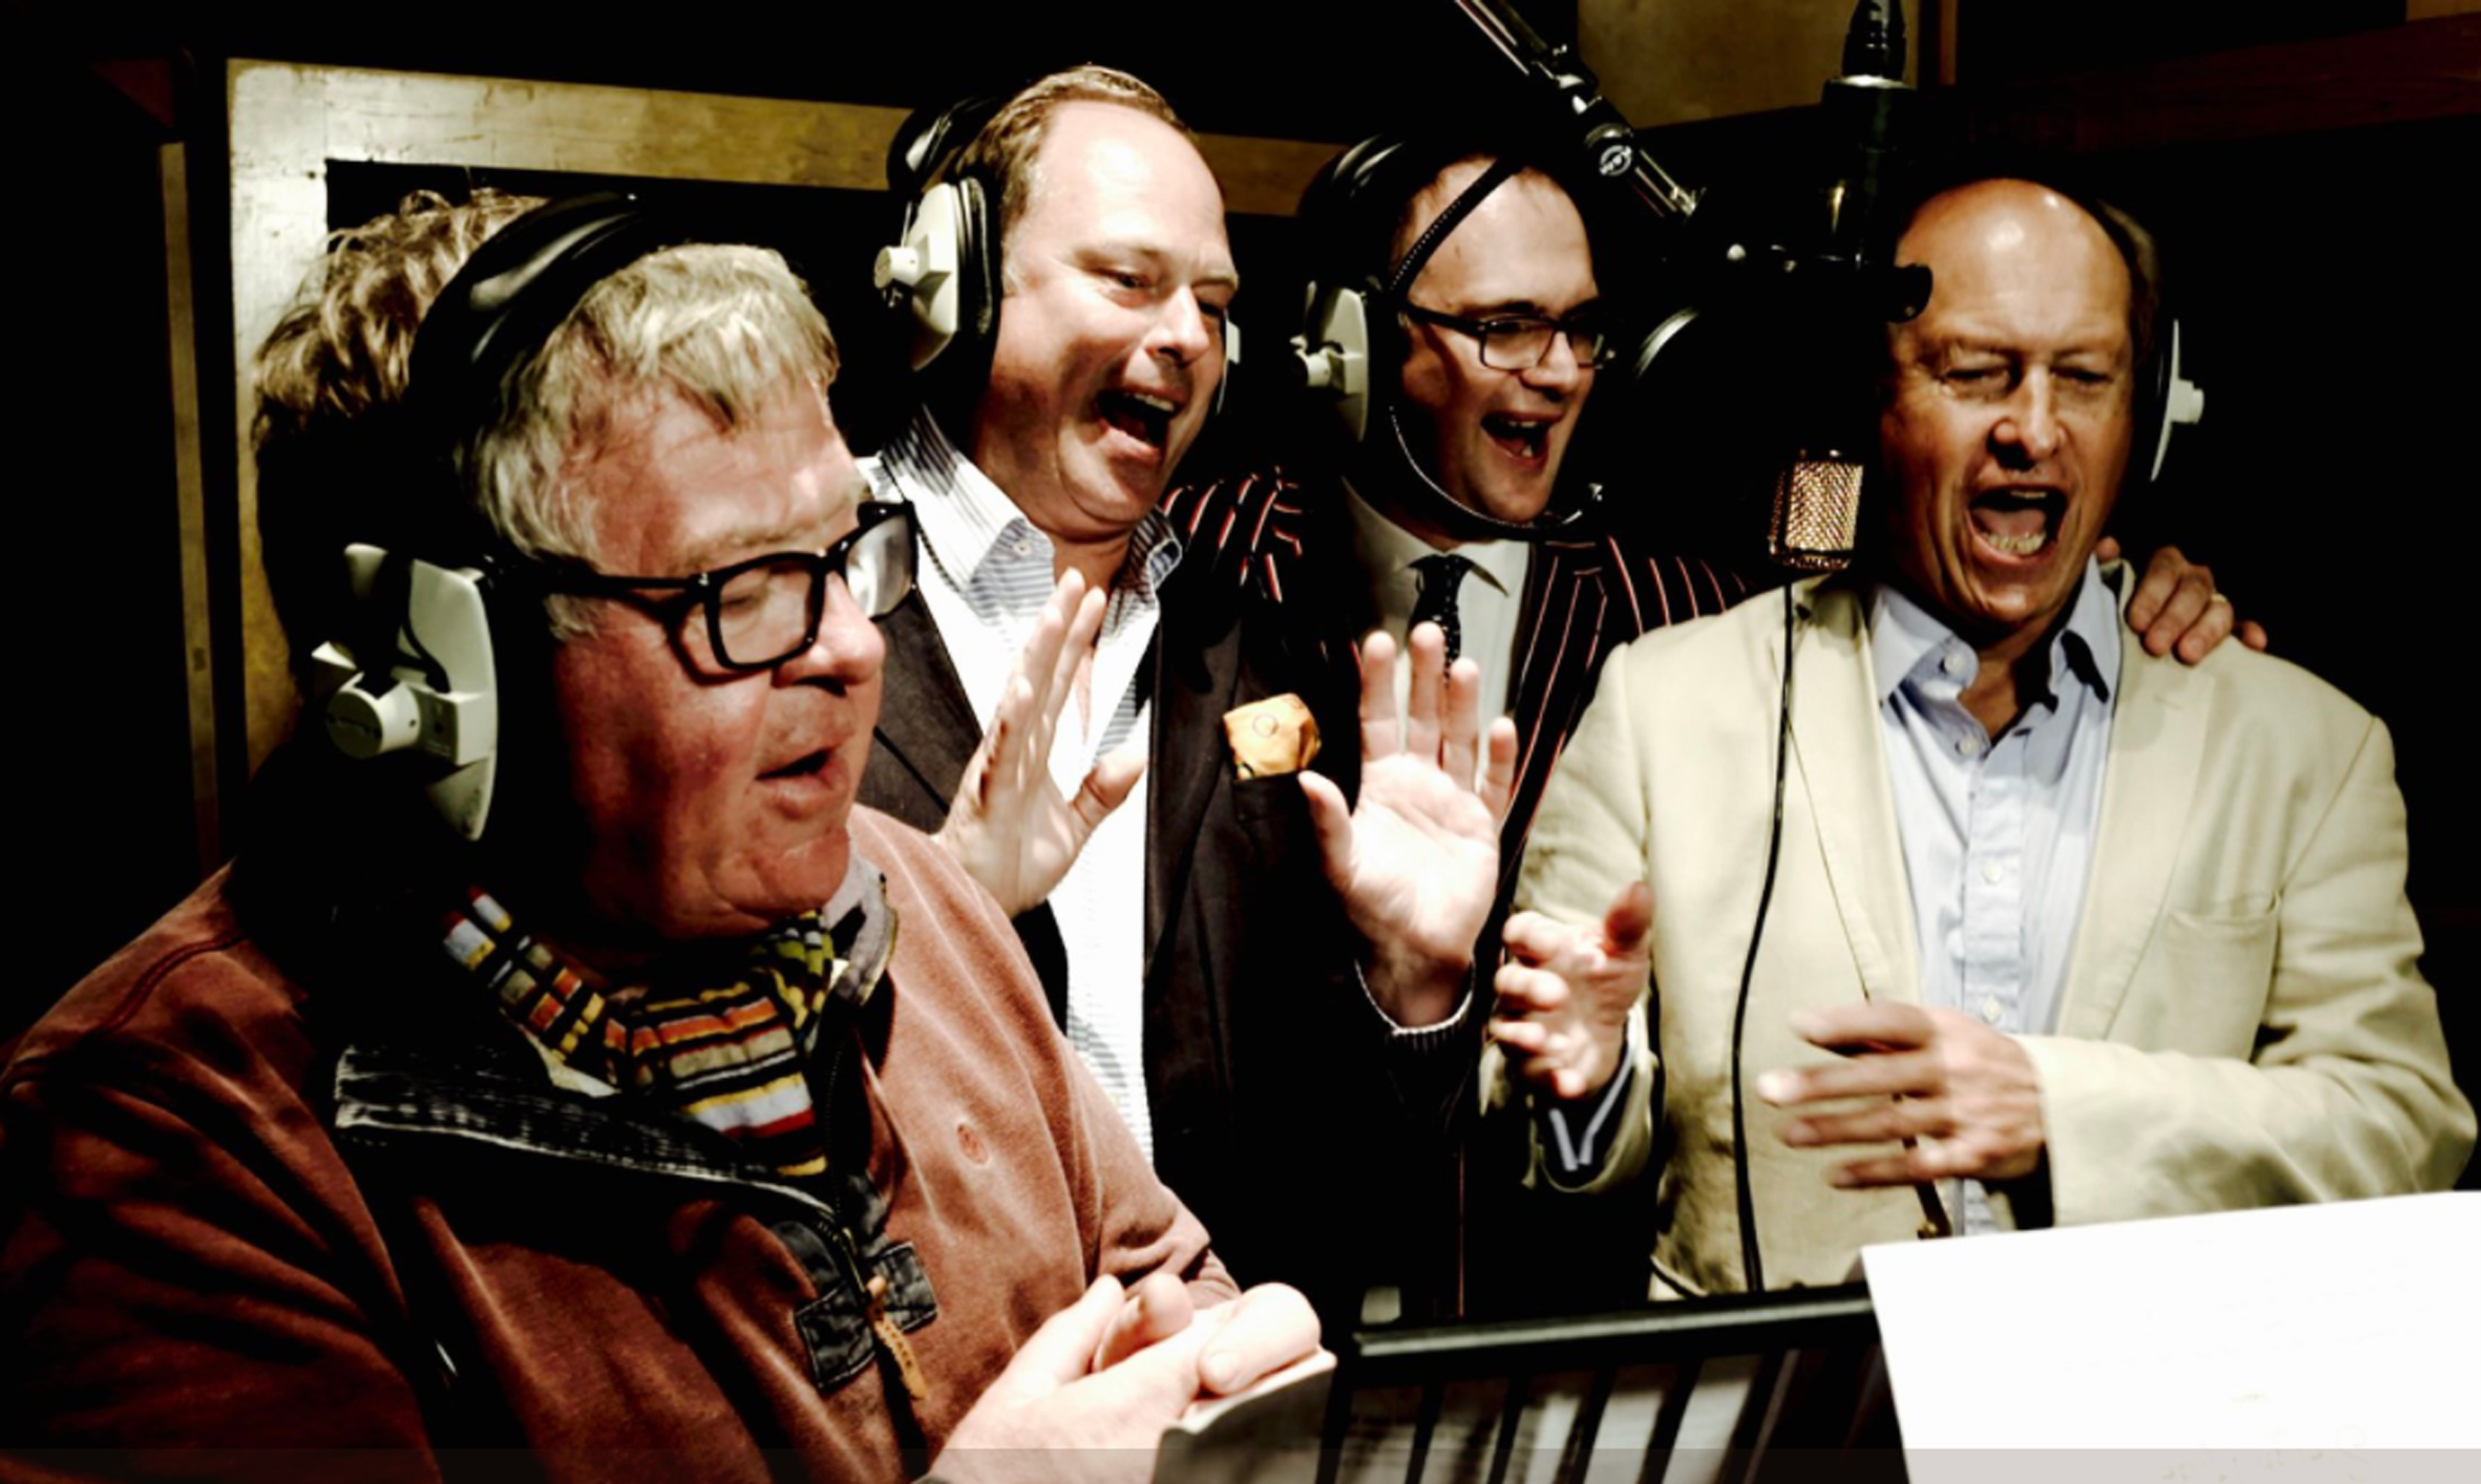 Television antiques experts Philip Serrell, James Braxton, Charles Hanson and Charlie Ross recording their charity Christmas single in a London recording studio. (Hansons Auctioneers/PA Wire)